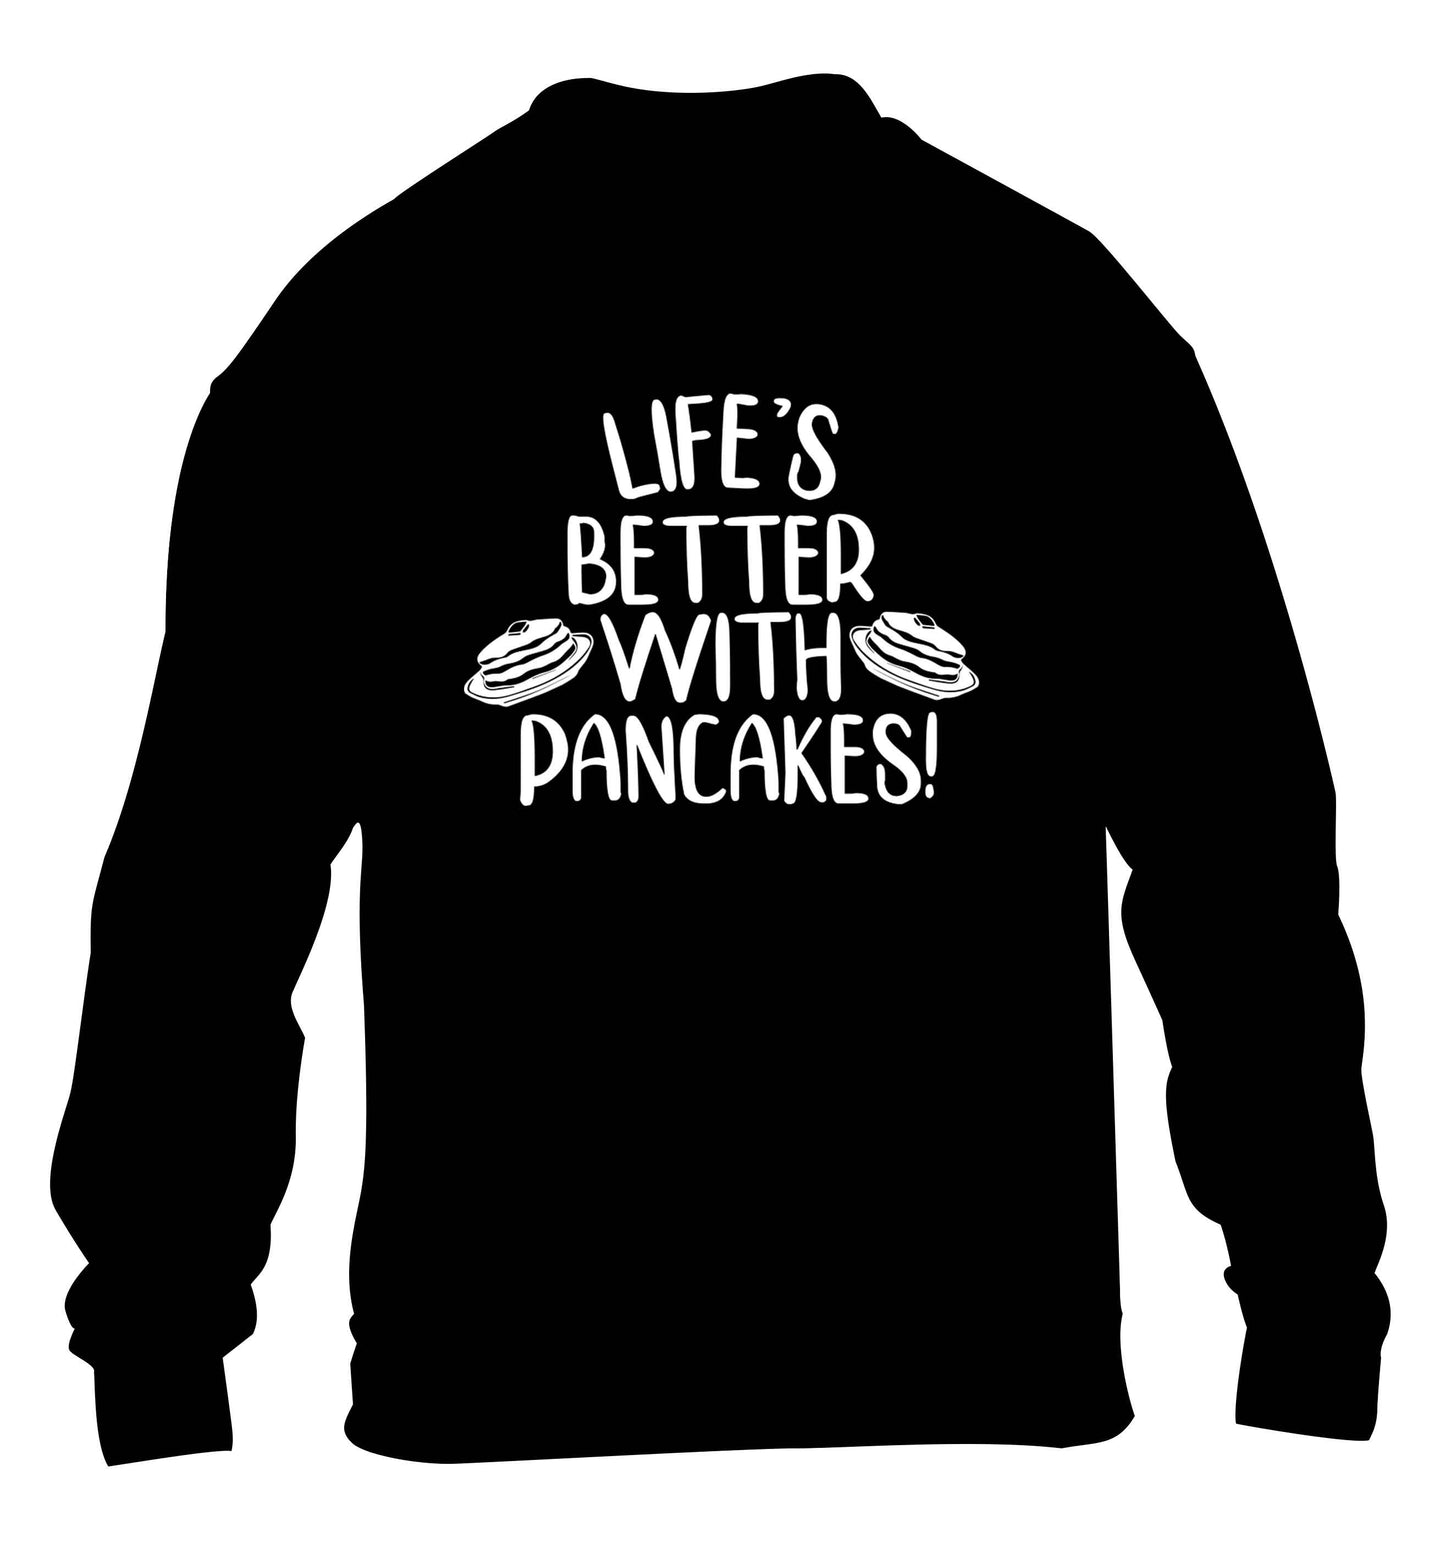 Life's better with pancakes children's black sweater 12-13 Years